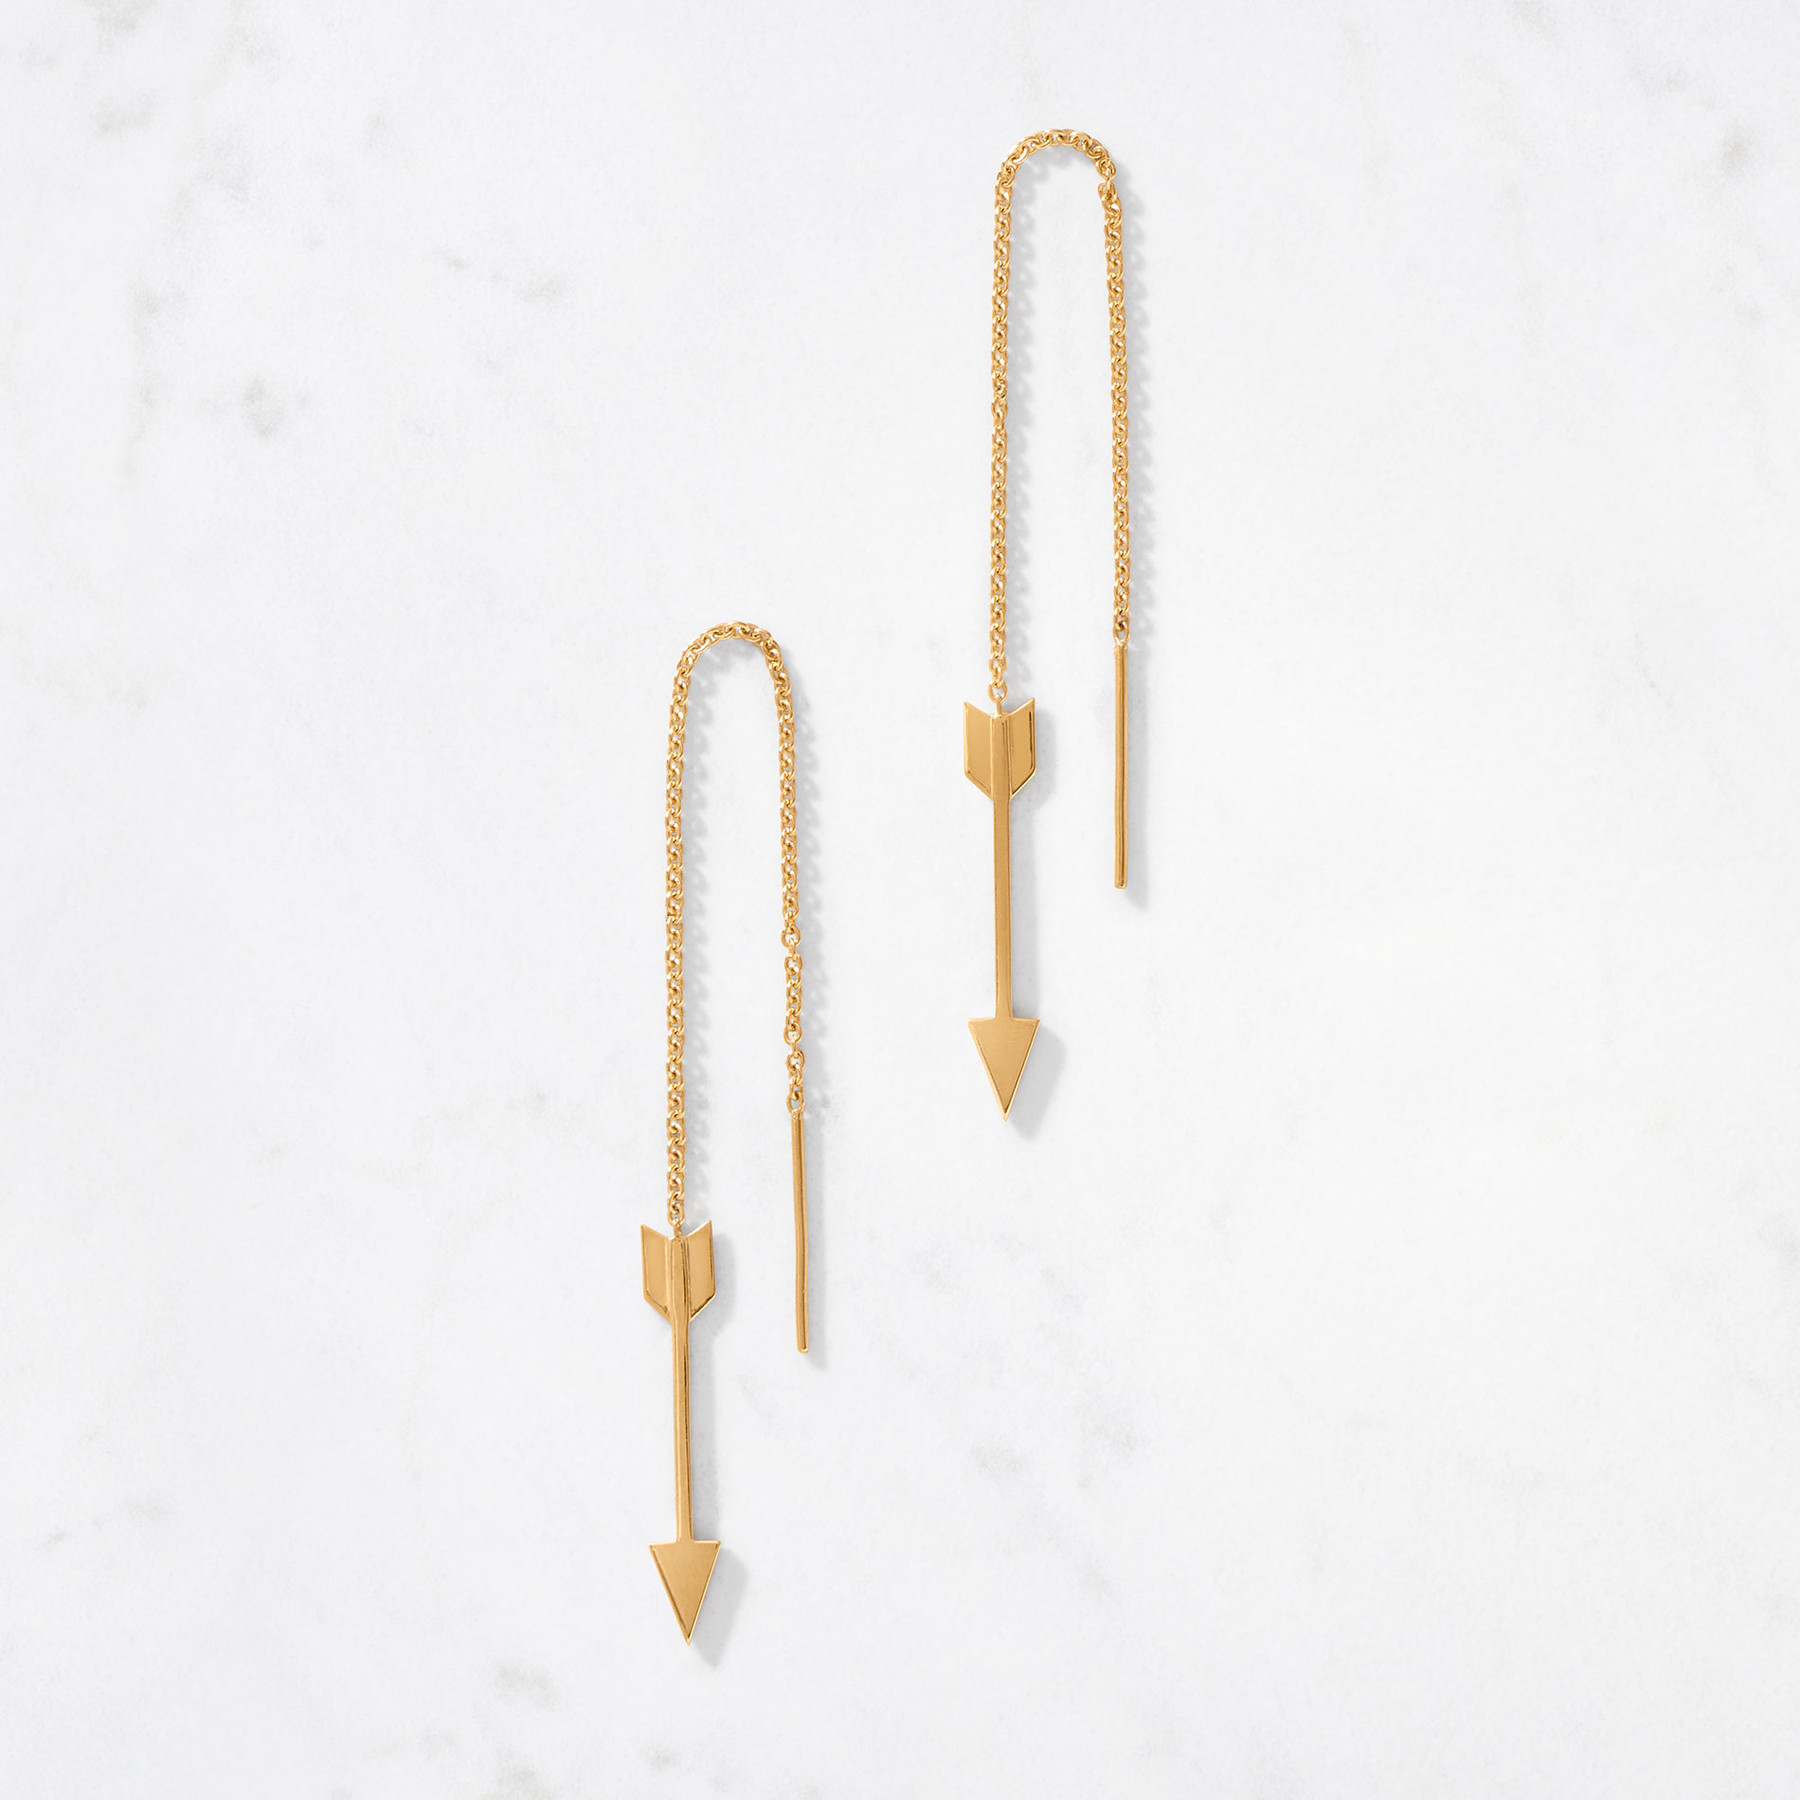 Handcrafted from 22 karat gold with a gold weight of approximately 3.8 grams, our Golden Arrow Threader Earrings shoot delicately through air and your ears on a fine, ultra light chain for a cool, sharp look.